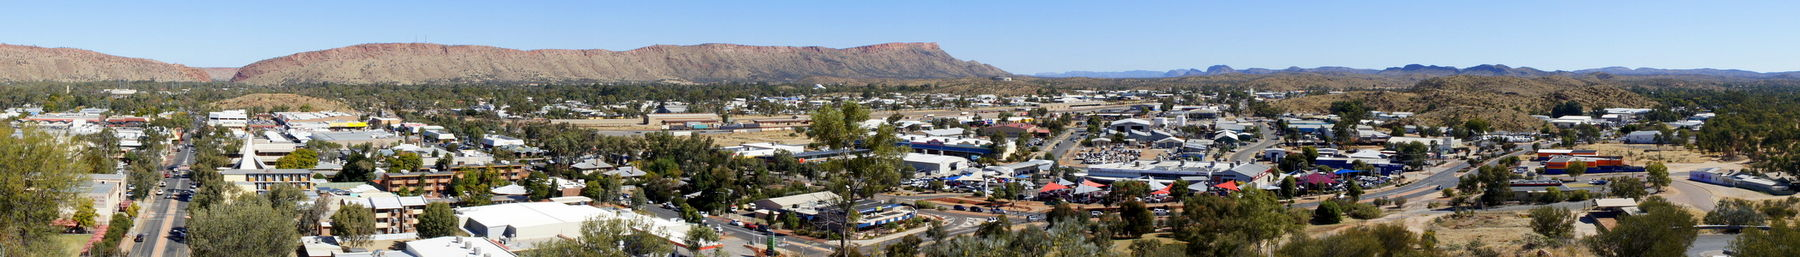 Alice Springs banner Township and MacDonnell Ranges.jpg